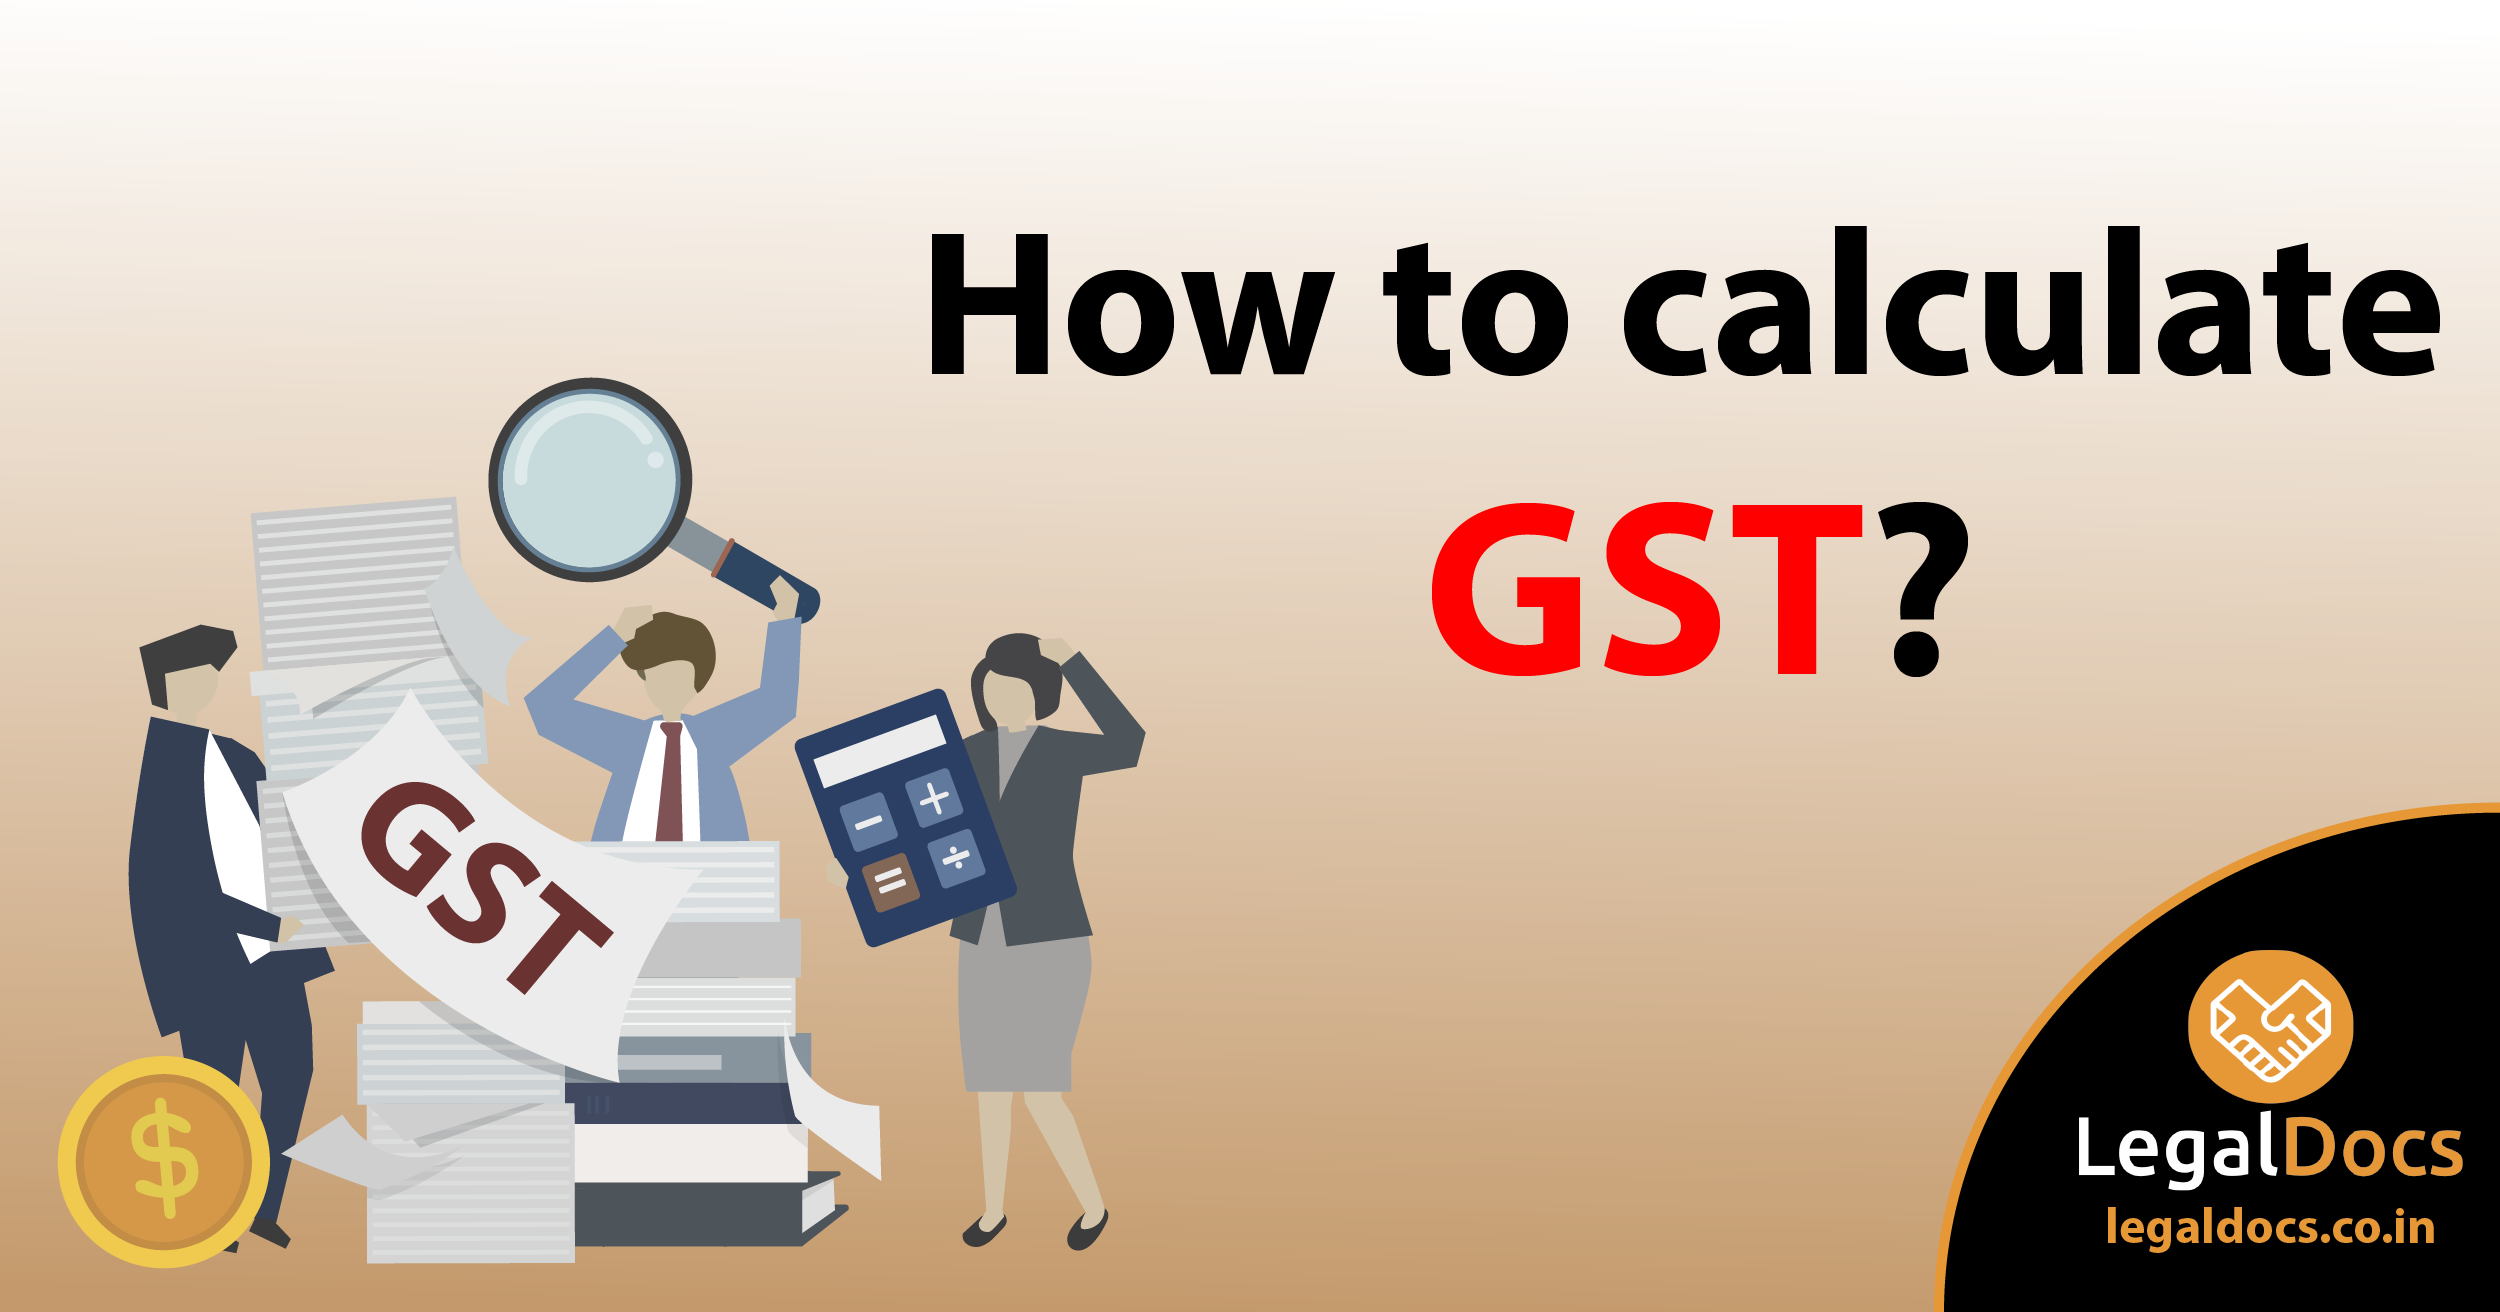 How to Calculate GST